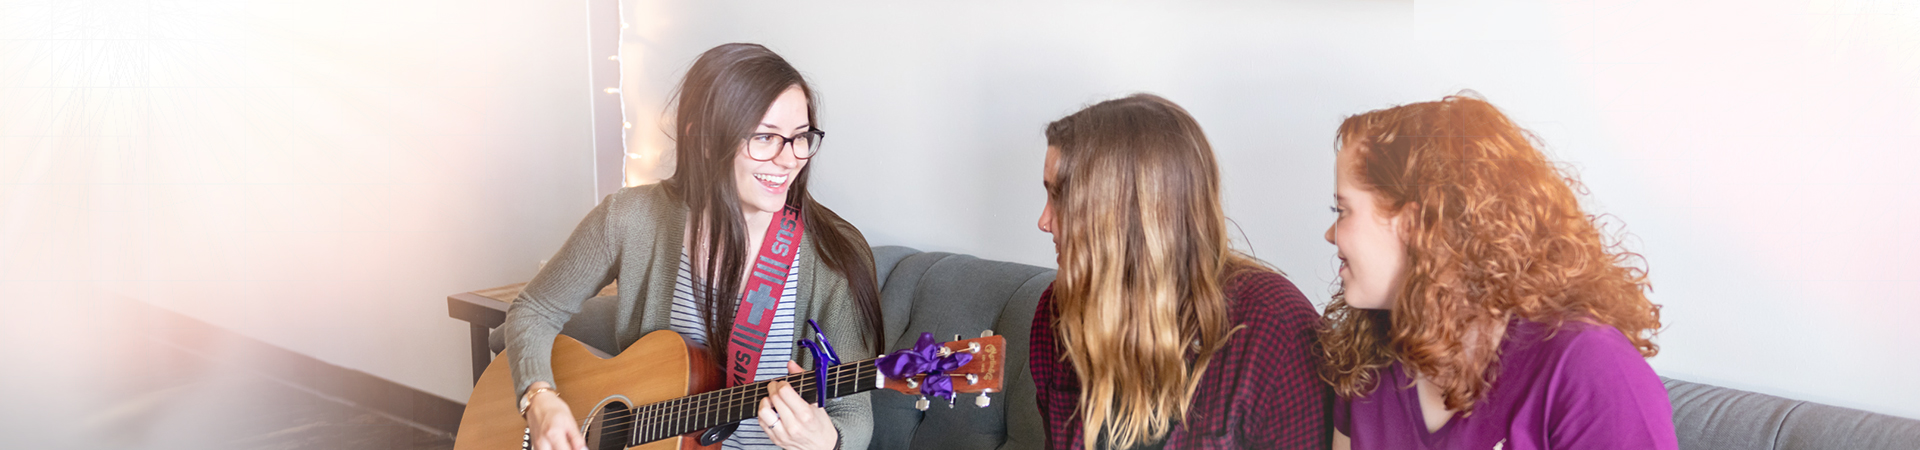 Three young women sitting on couch with guitar.